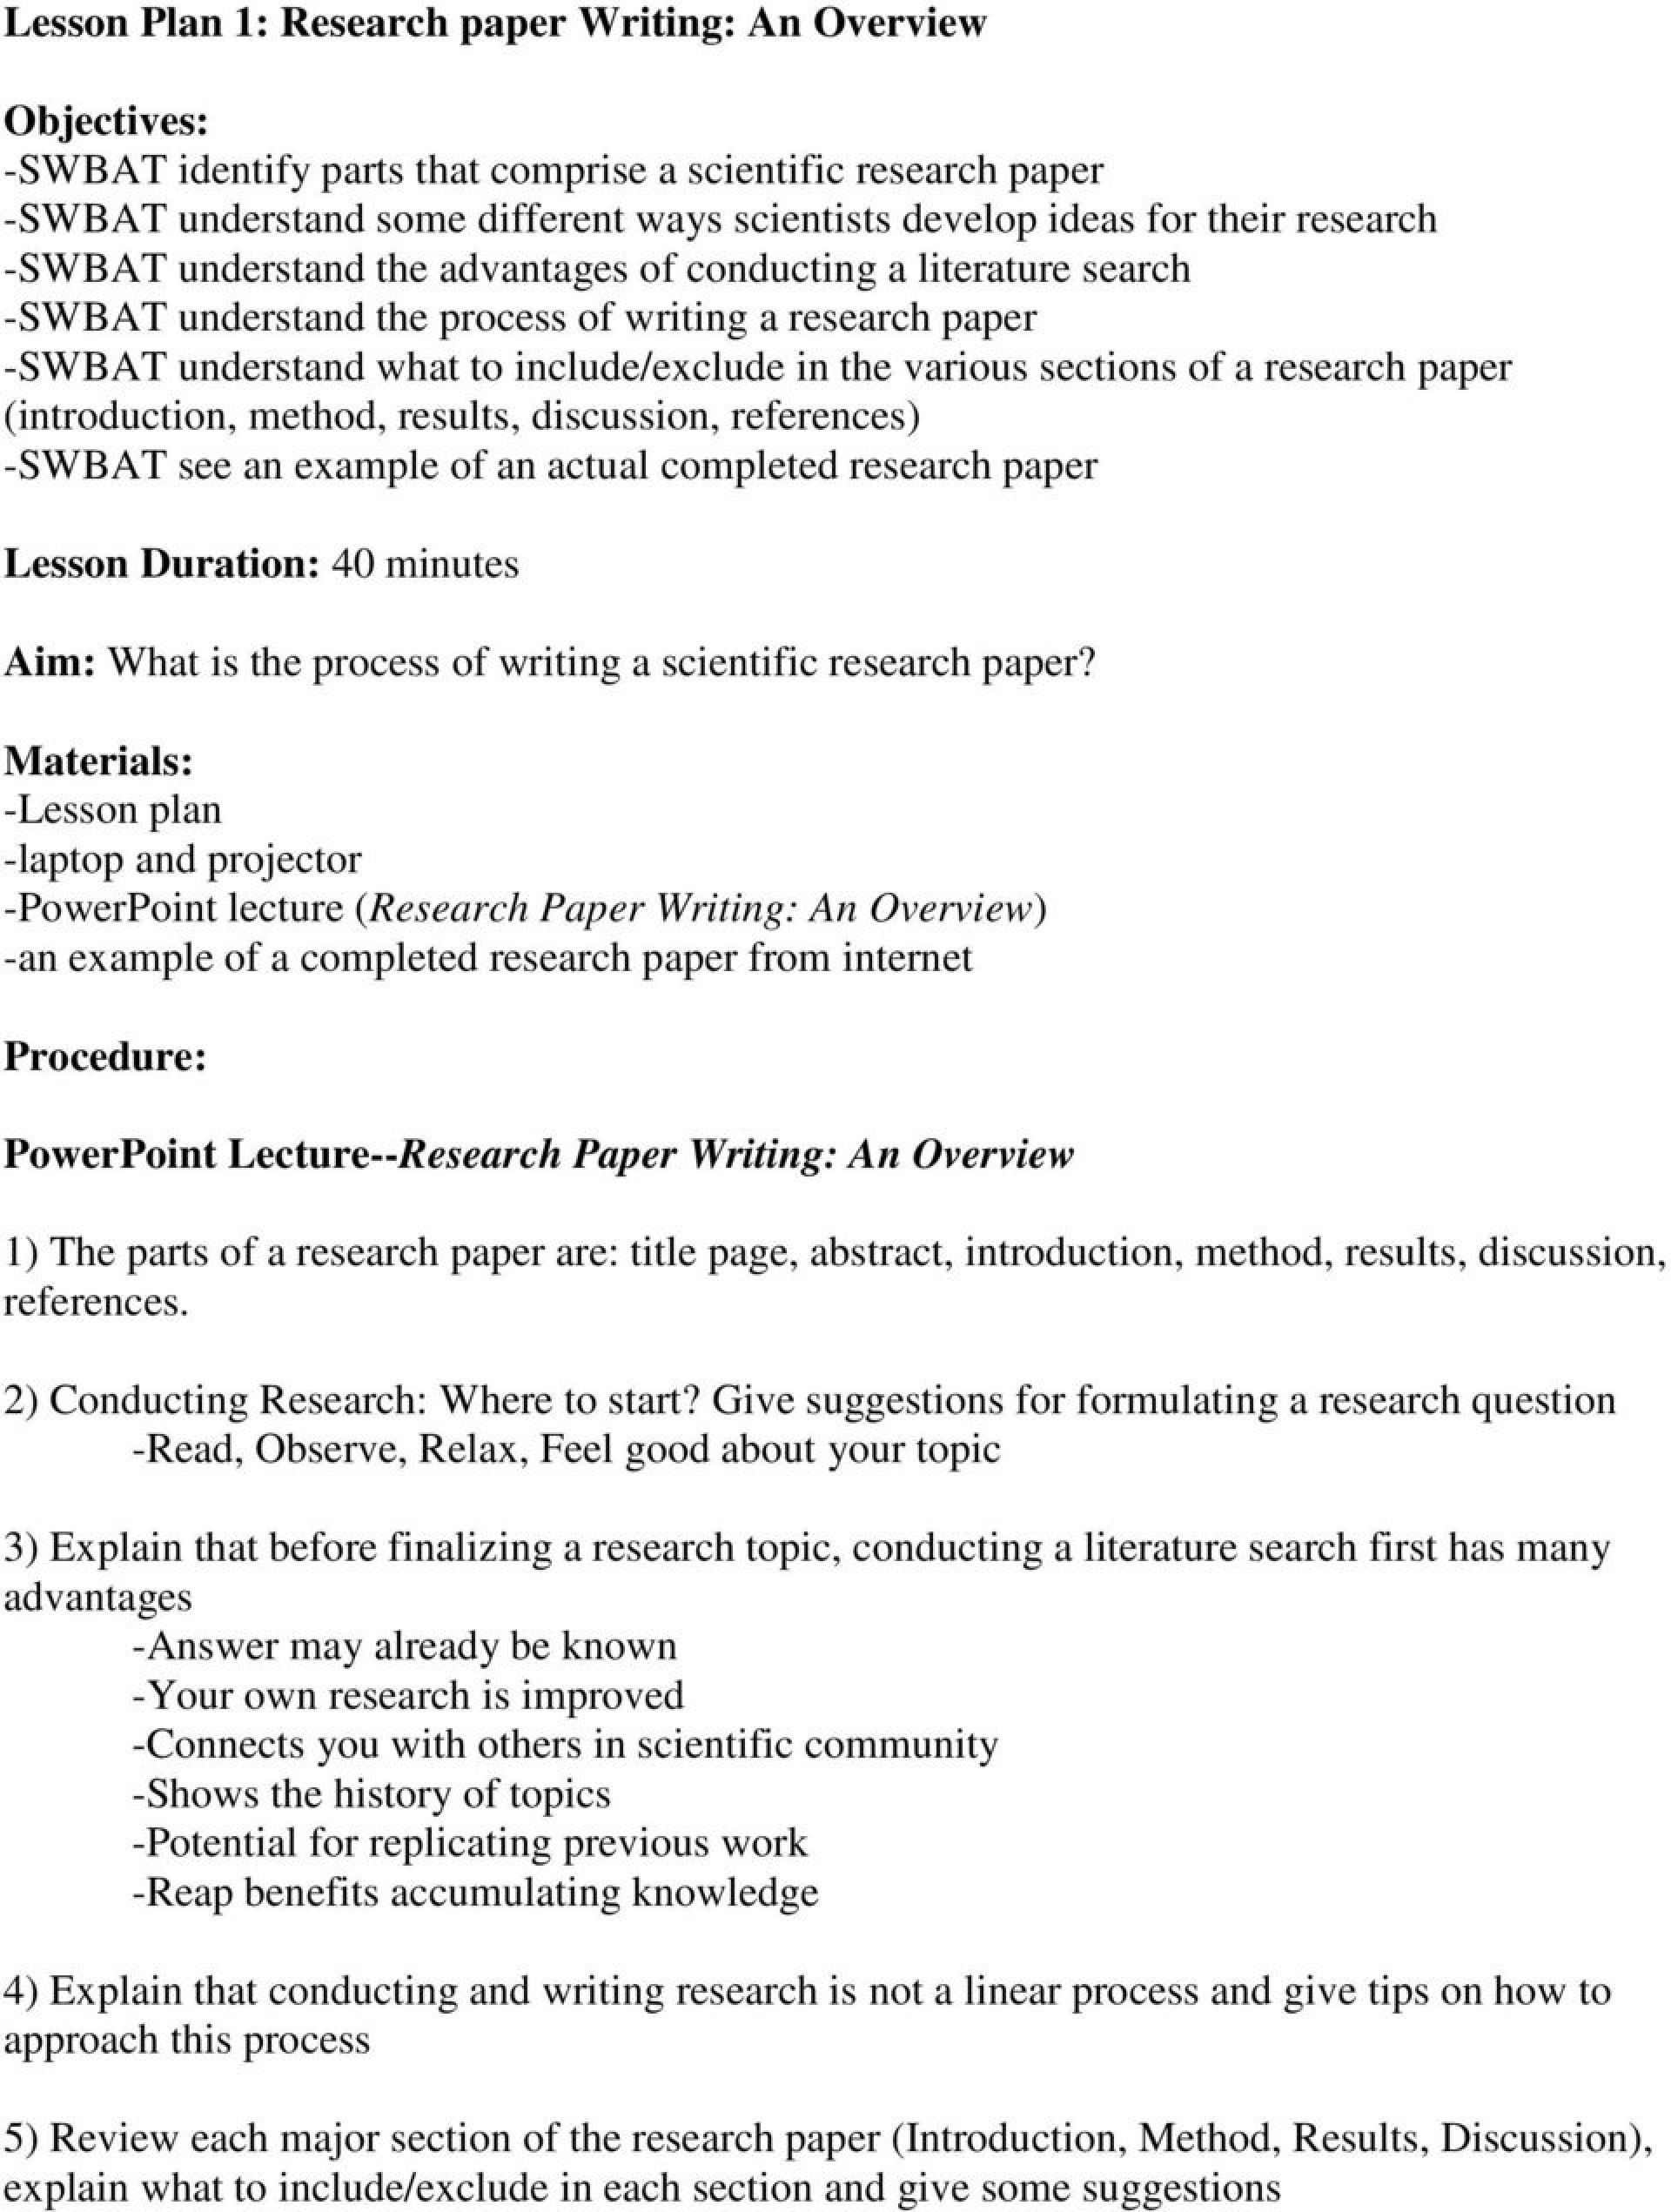 005 Page 1 Research Paper Parts Of Best A Ppt Chapter 5 Qualitative 1920